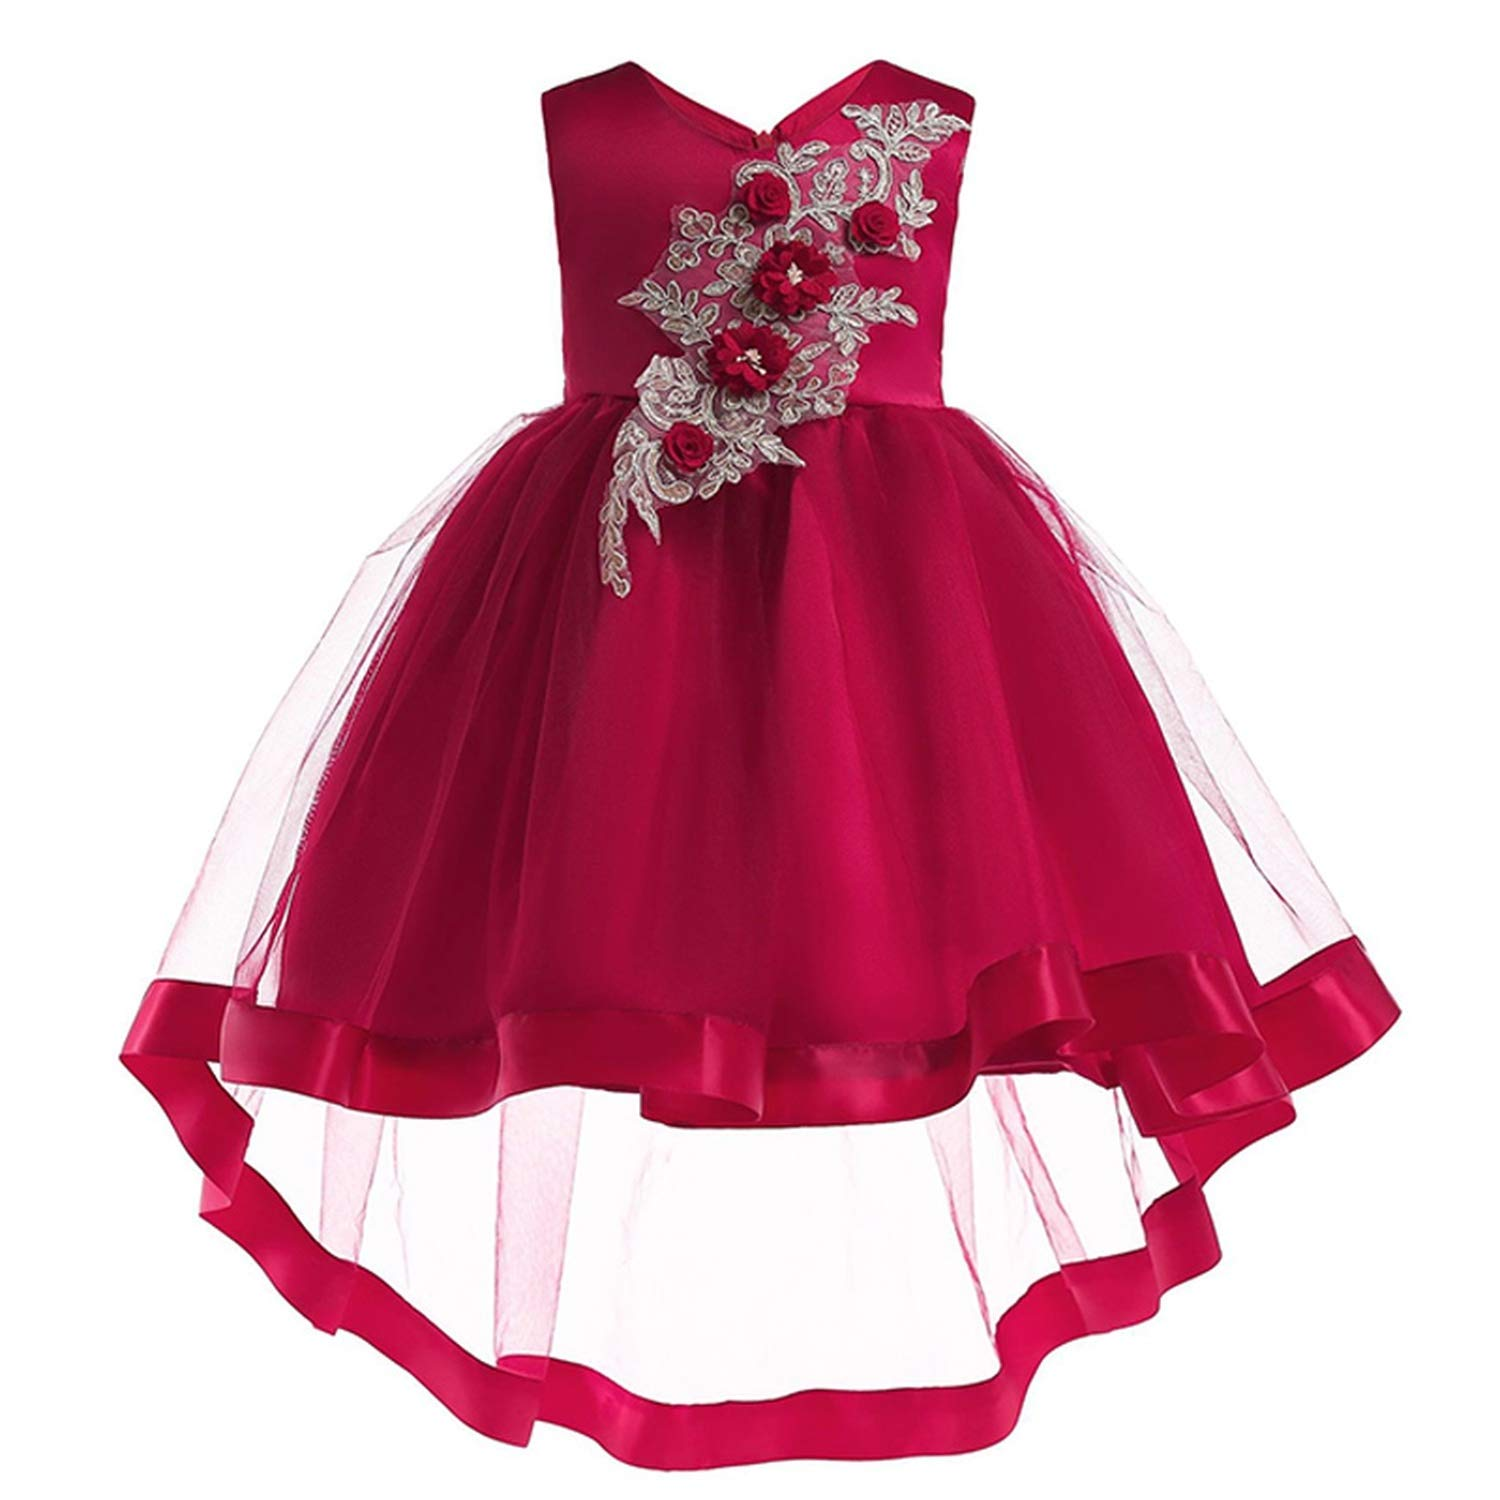 Girls Dress Summer Kids Dresses for Girl Princess Children Baby Tutu 2 3 4 5 6 7 8 9 10 Years,As Picture10,9 by Gooding Day (Image #4)